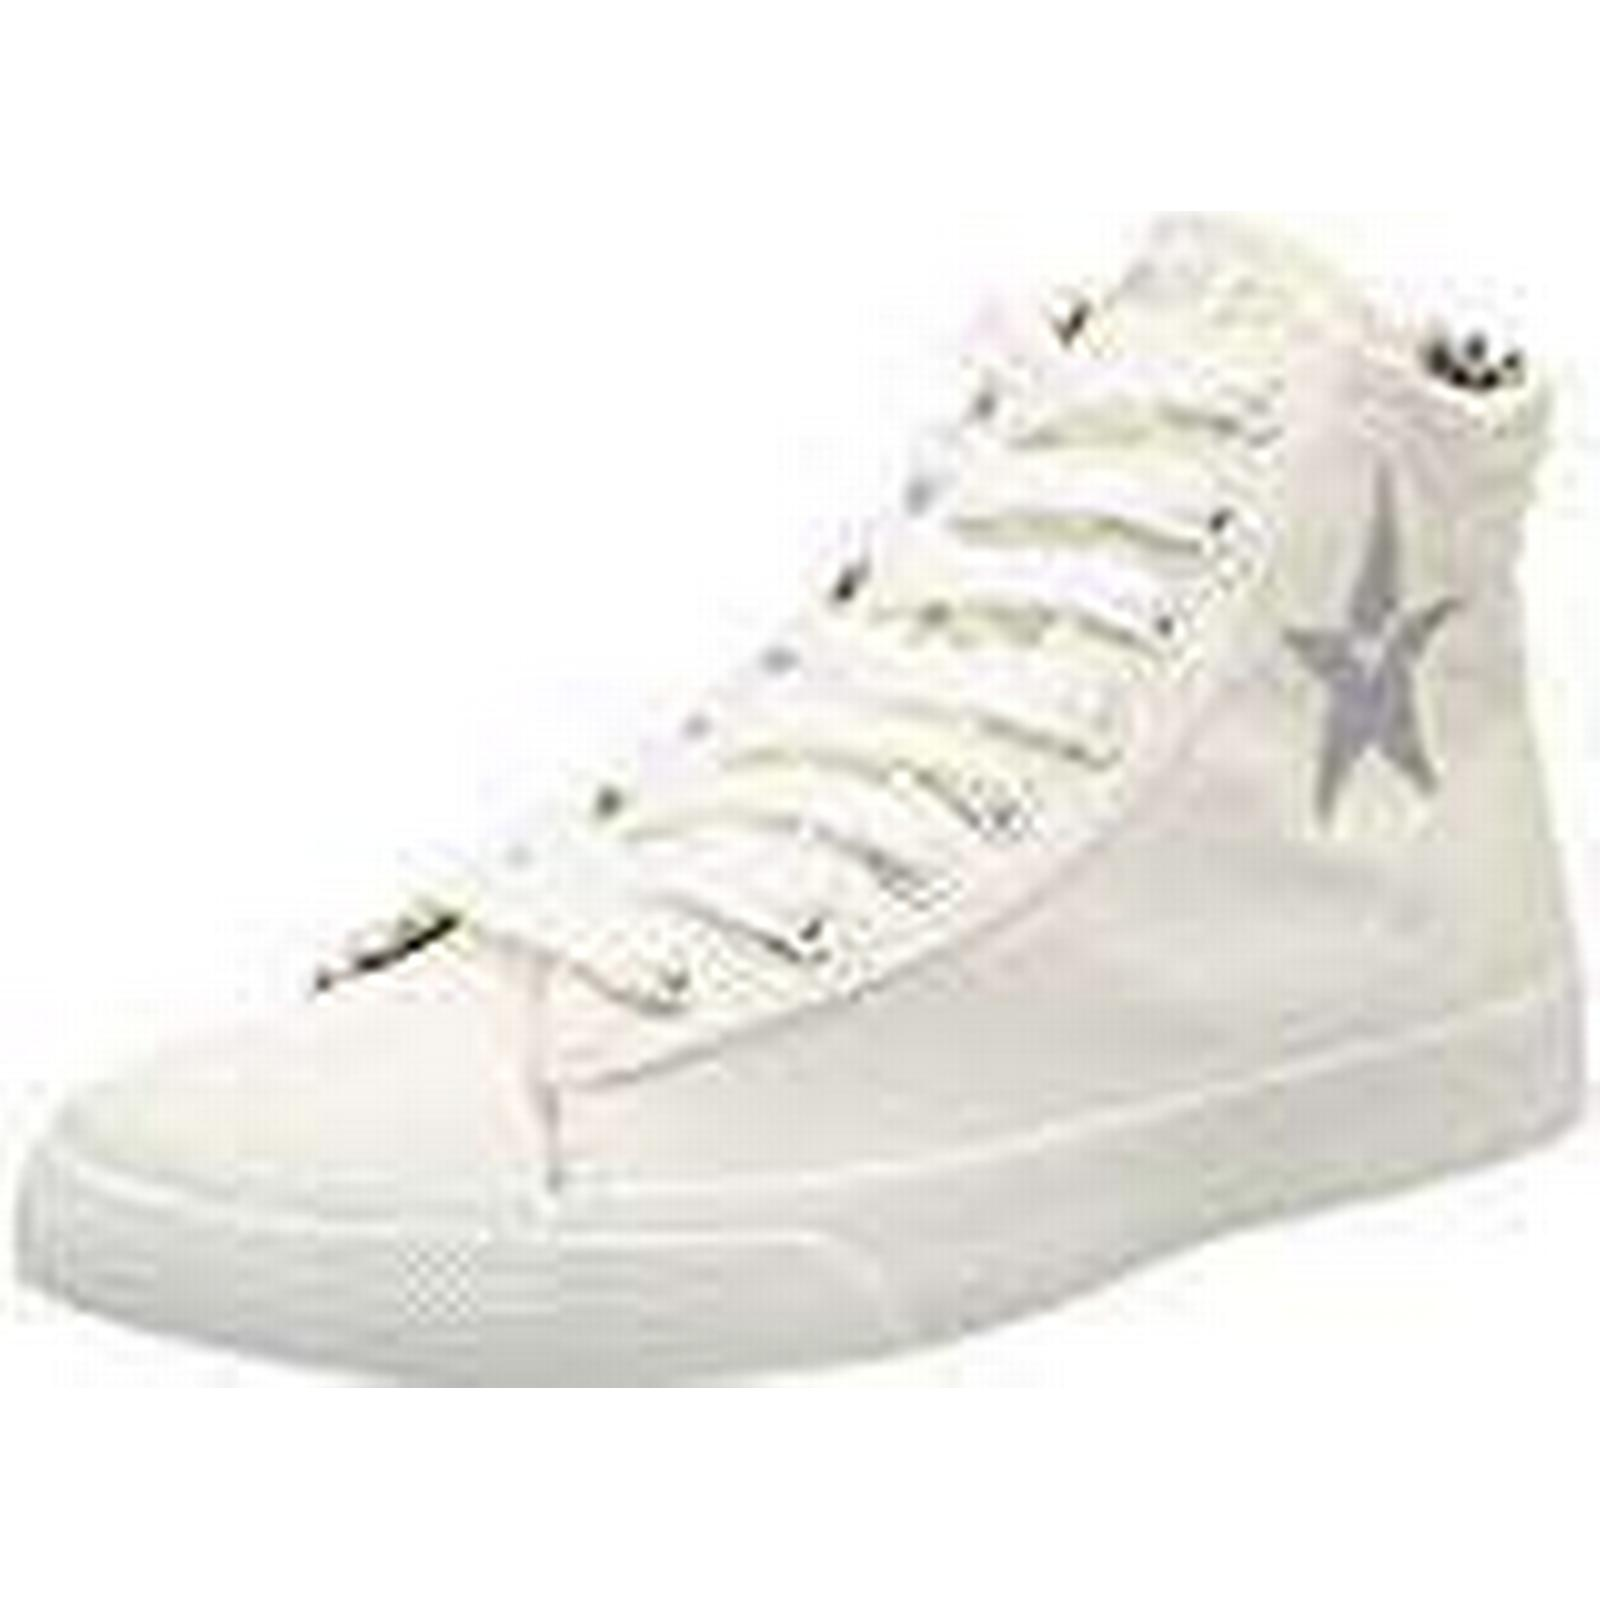 Replay Edna, Women's Hi-Top Trainers Hi-Top Trainers, UK White (Off Wht), 6 UK Trainers, (39 EU) 6a87dd